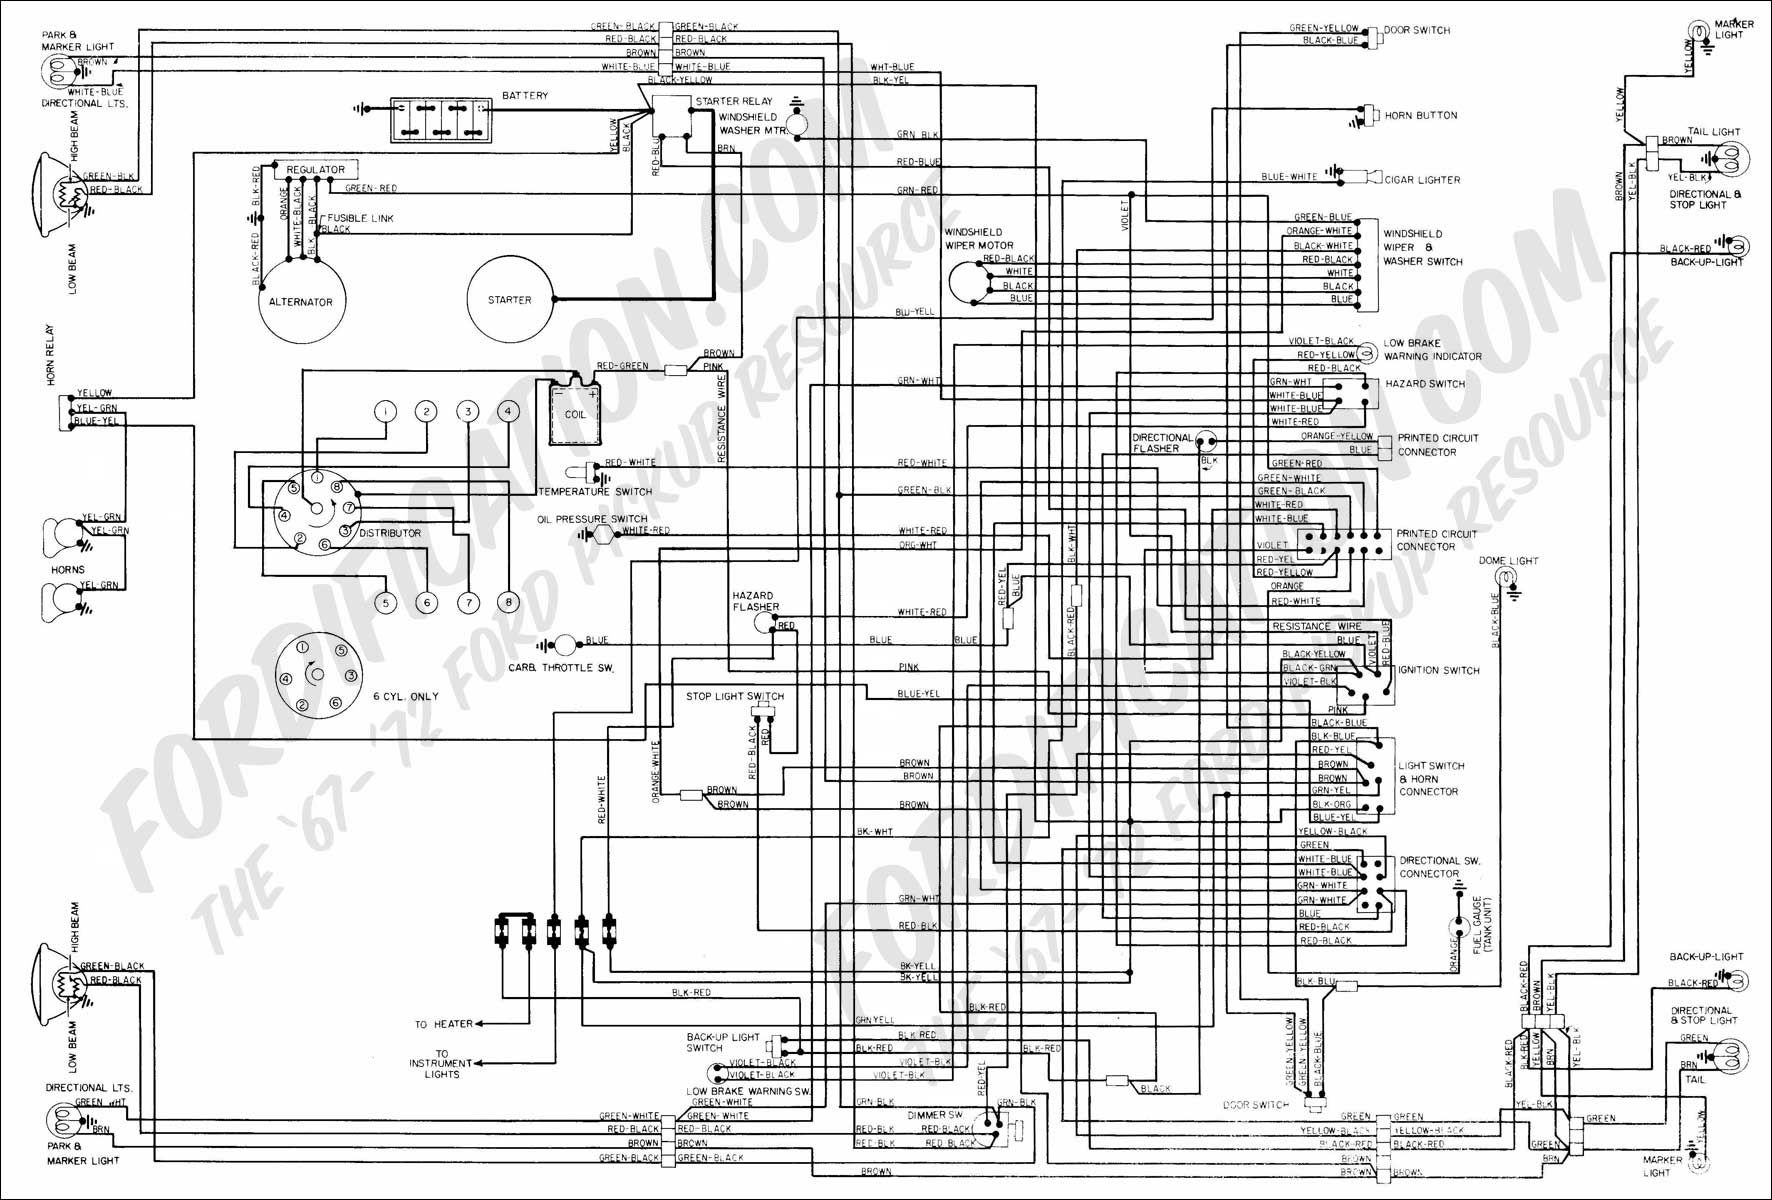 be873db495753211c2fc9a563f039b29 solenoid 1971 f250 1971 ford f100 wiring diagram www ford 1971 ford f250 wiring diagram at edmiracle.co